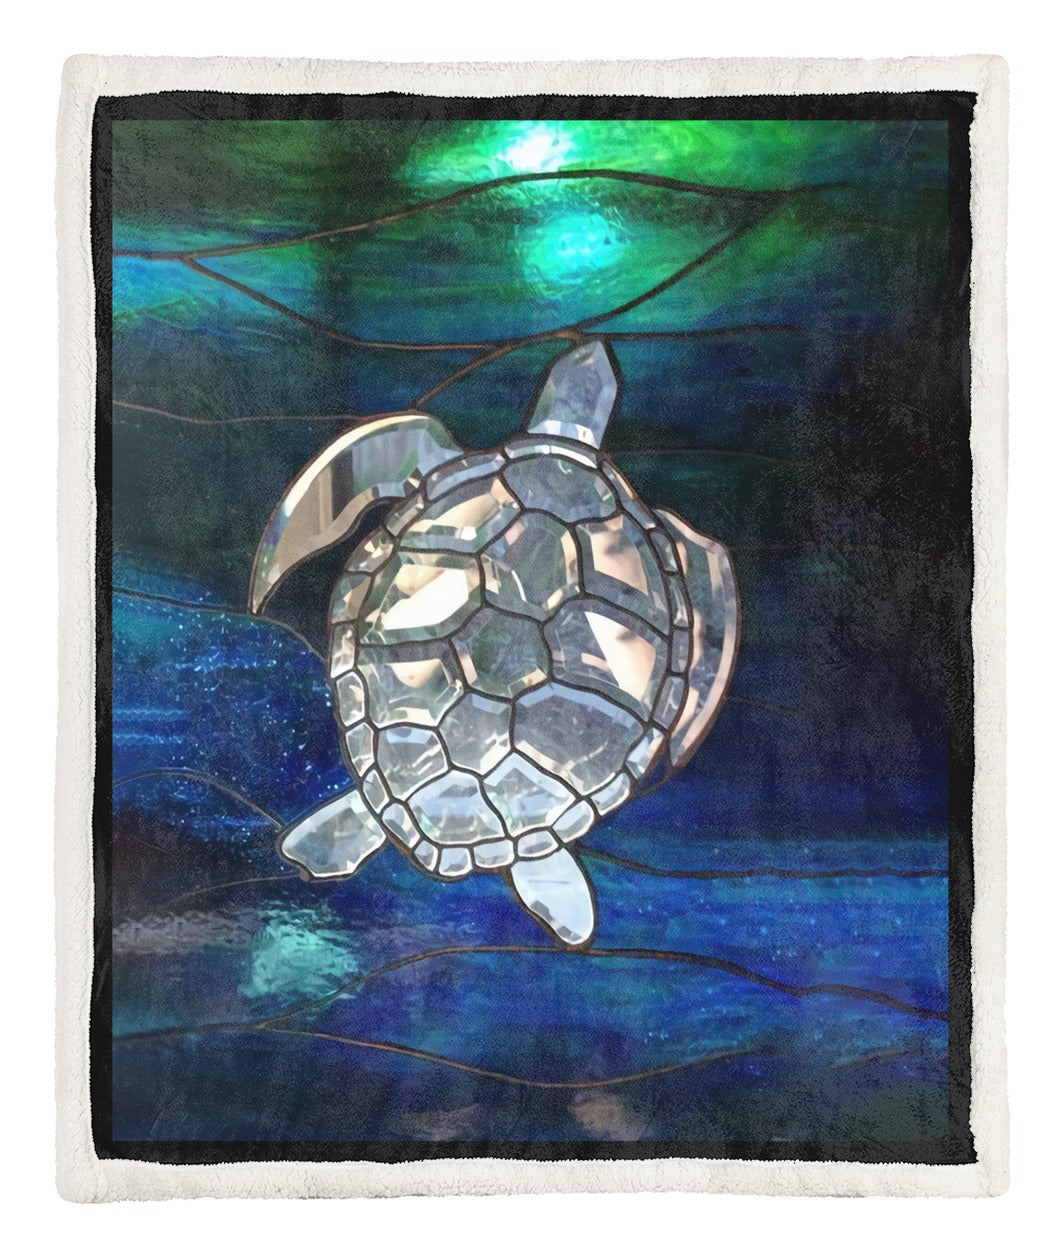 turtle-throw-blanket-tabccc19103937